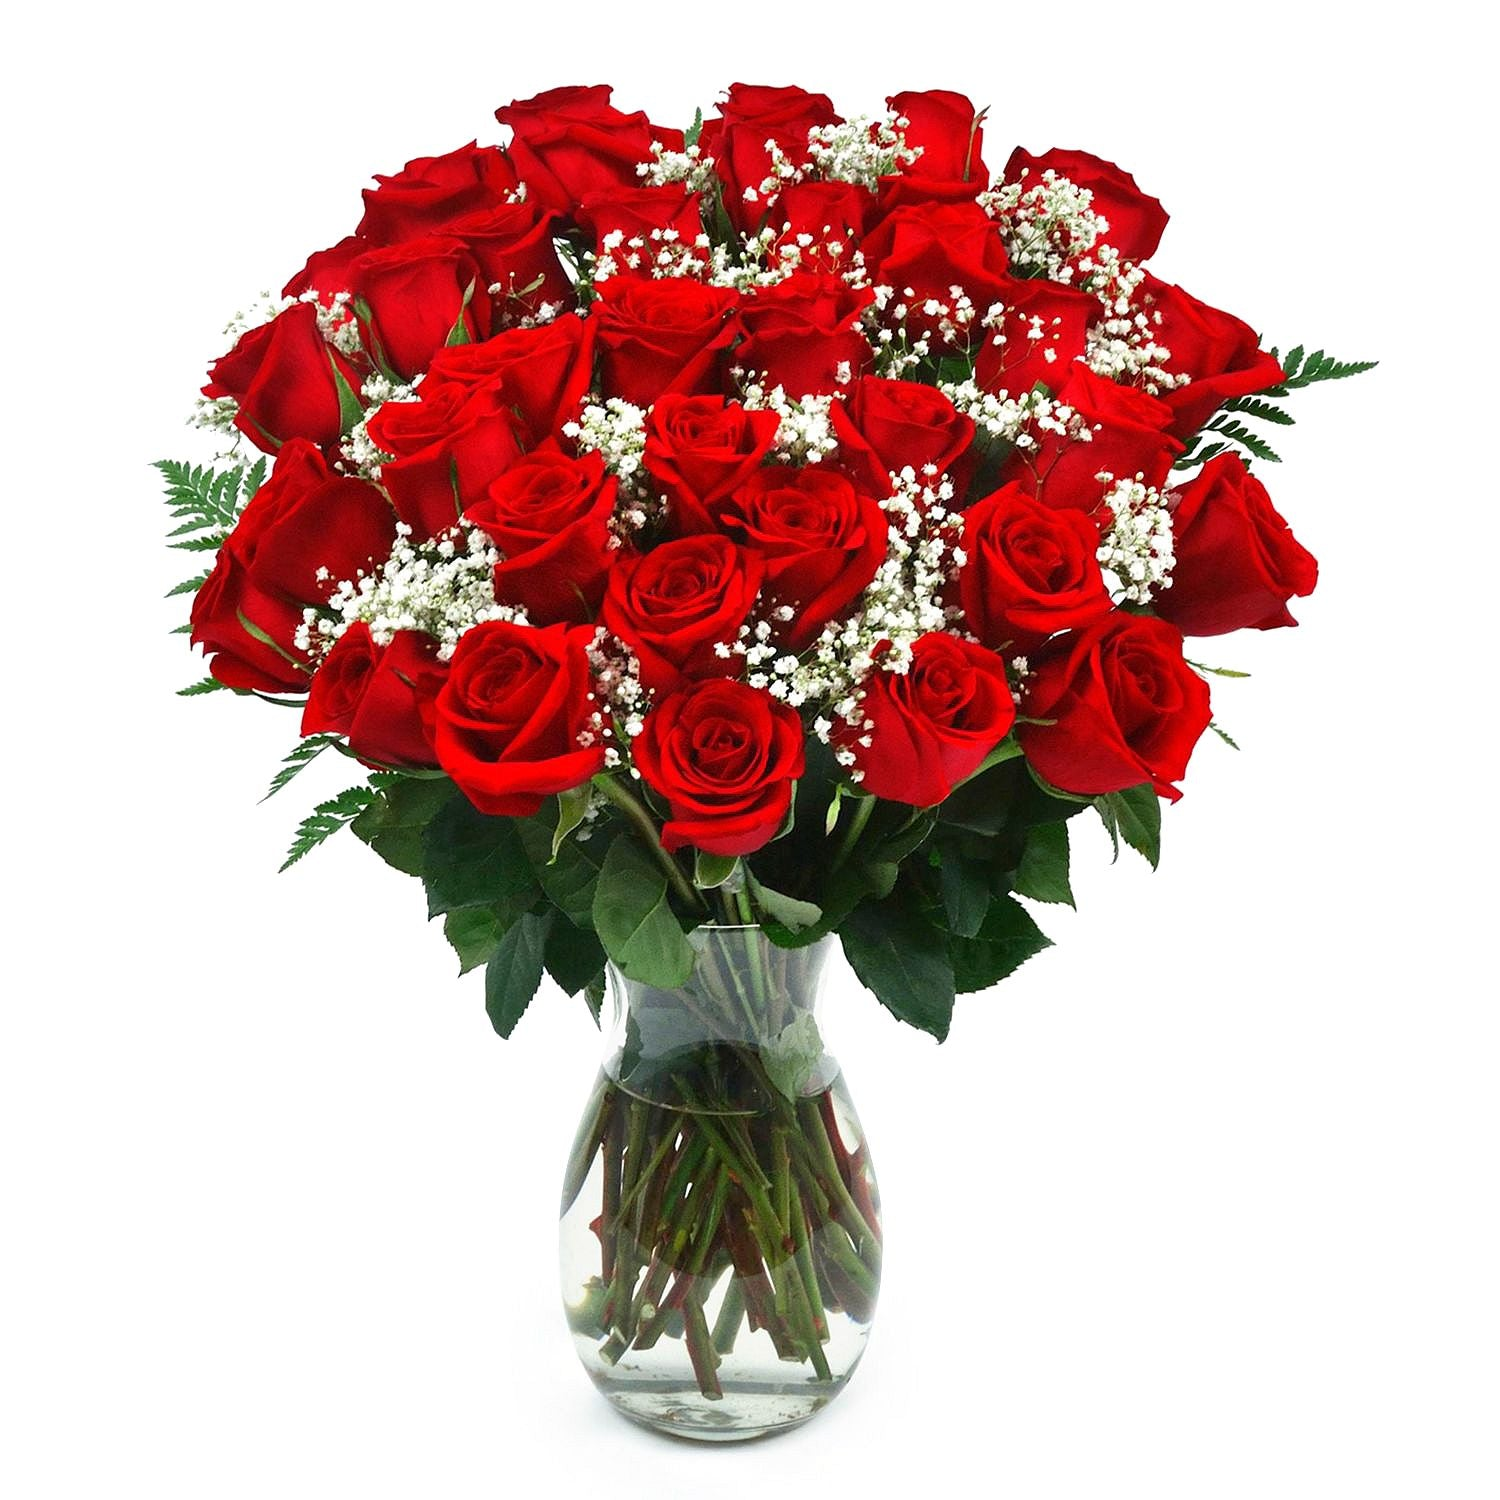 Classic red rose bouquet 36 stems mega mall shop classic red rose bouquet 36 stems choose with or without vase reviewsmspy